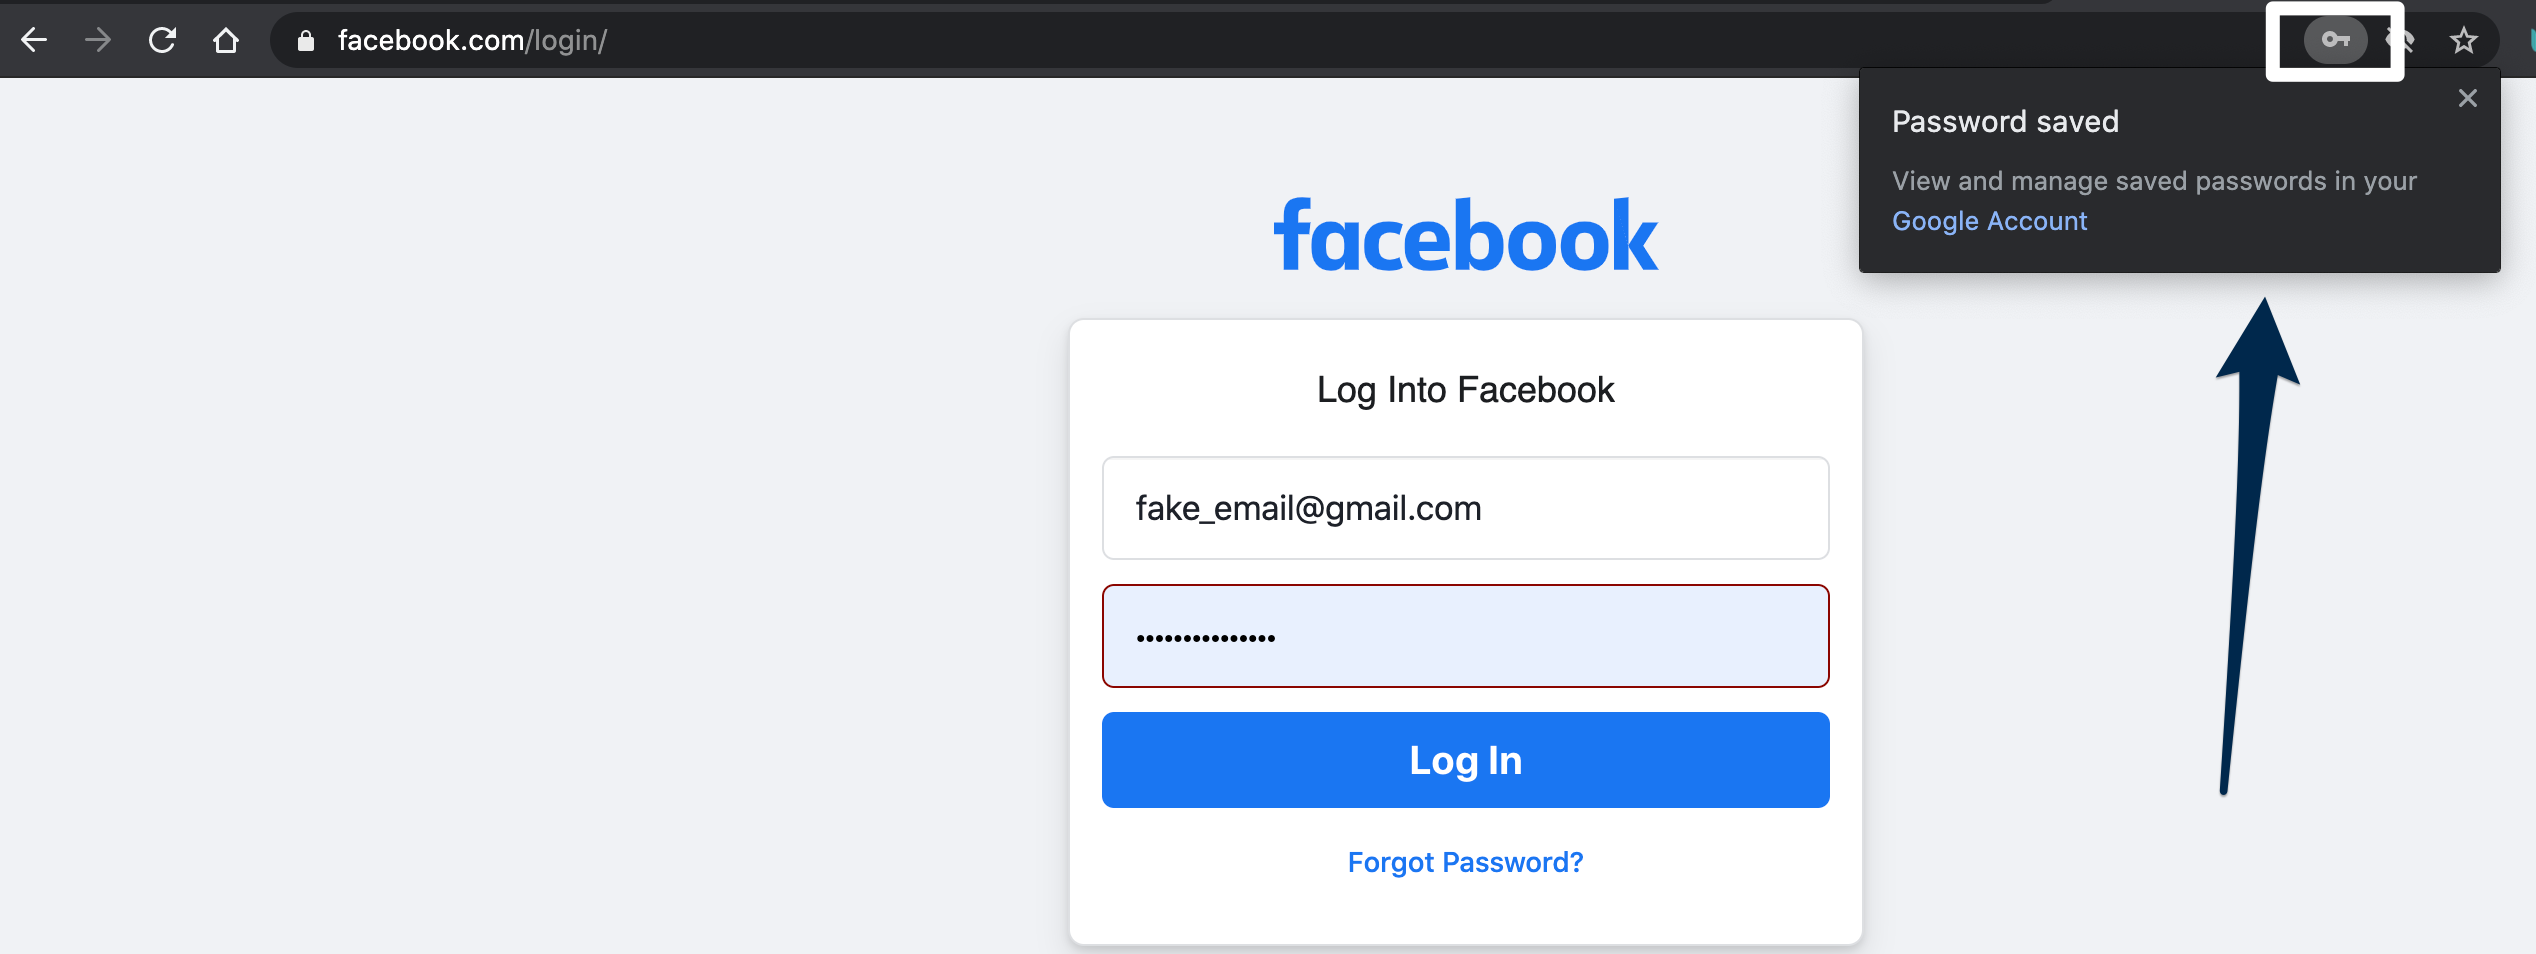 View of the facebook login screen. In the browser address bar is a key icon which is highlighted. and an arrow is pointing at the dialog box which says Pasword Saved, view and manage saved passwords in your Google Account. Google account is linked text.